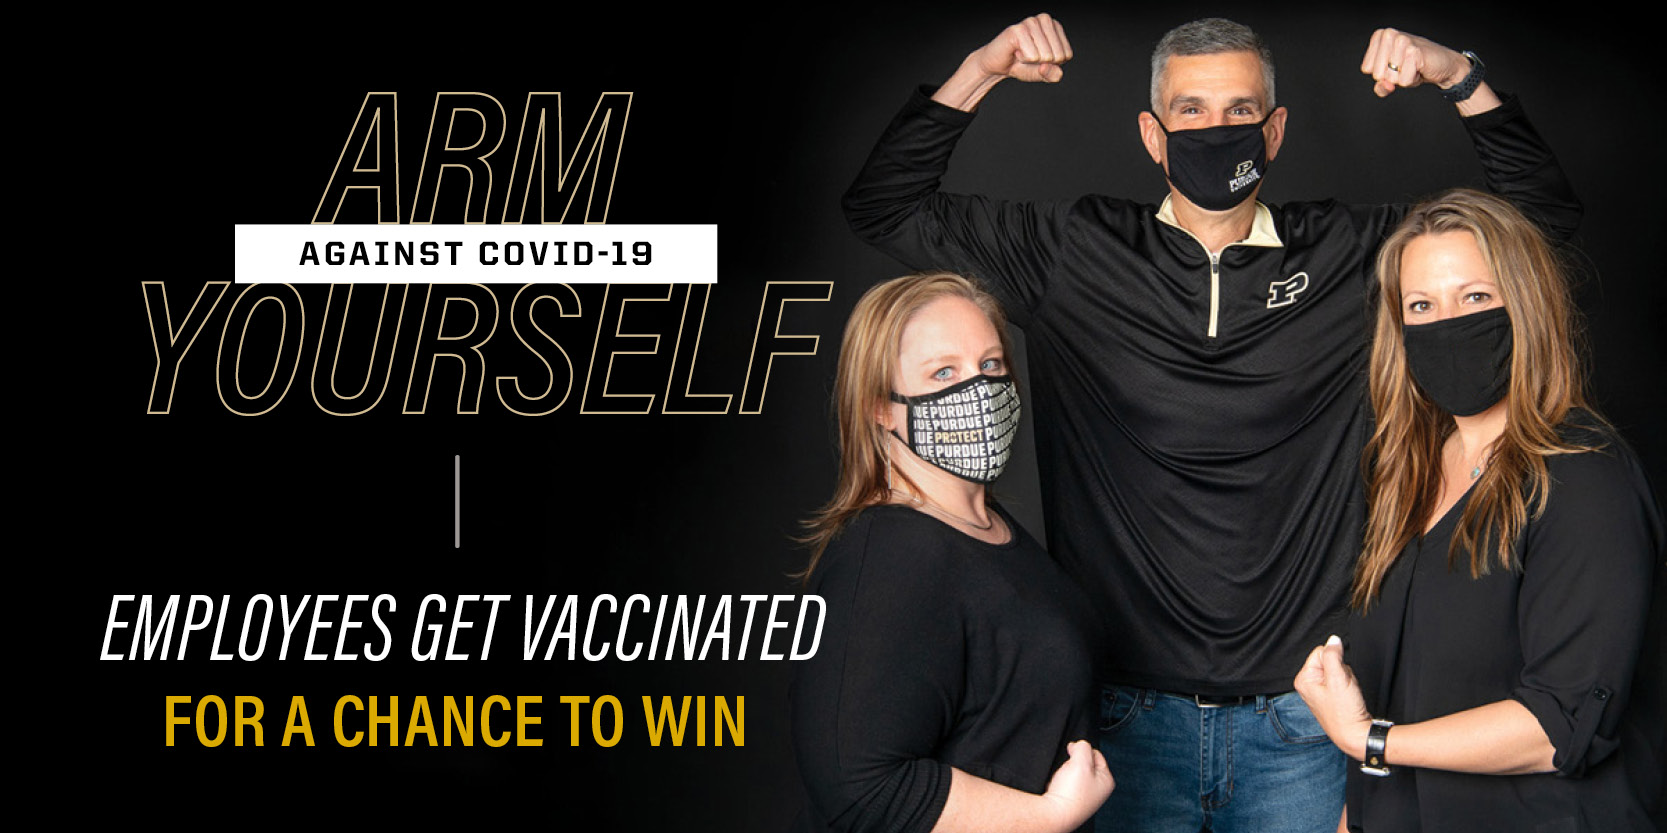 PPVaccine-ChancetoWin-Faculty